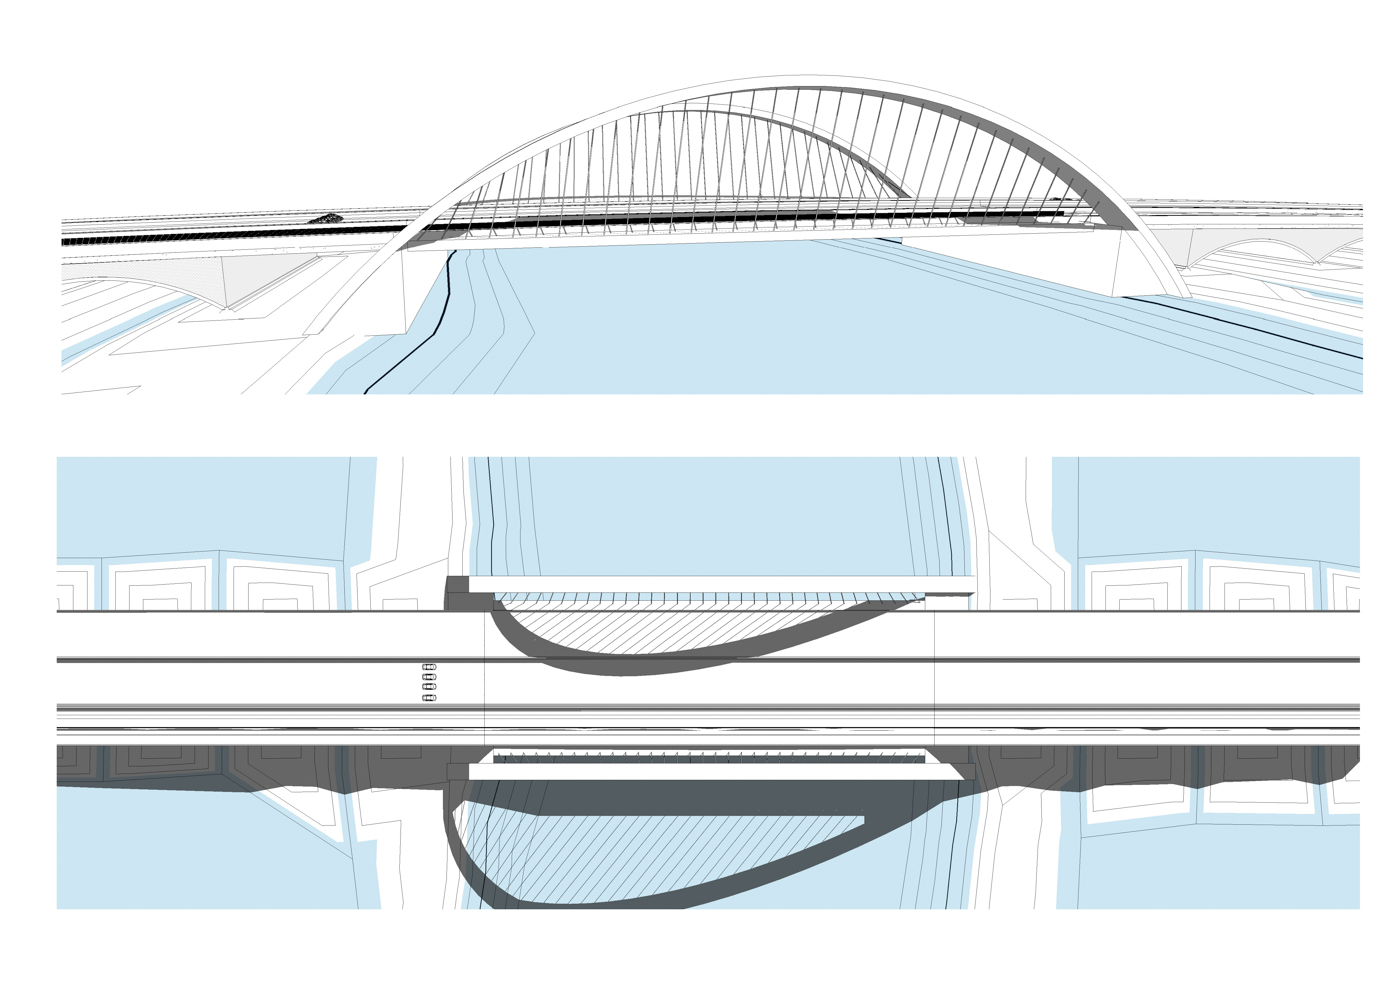 Concept 3: A truss-type bridge consisting of two braced bowstring arches.